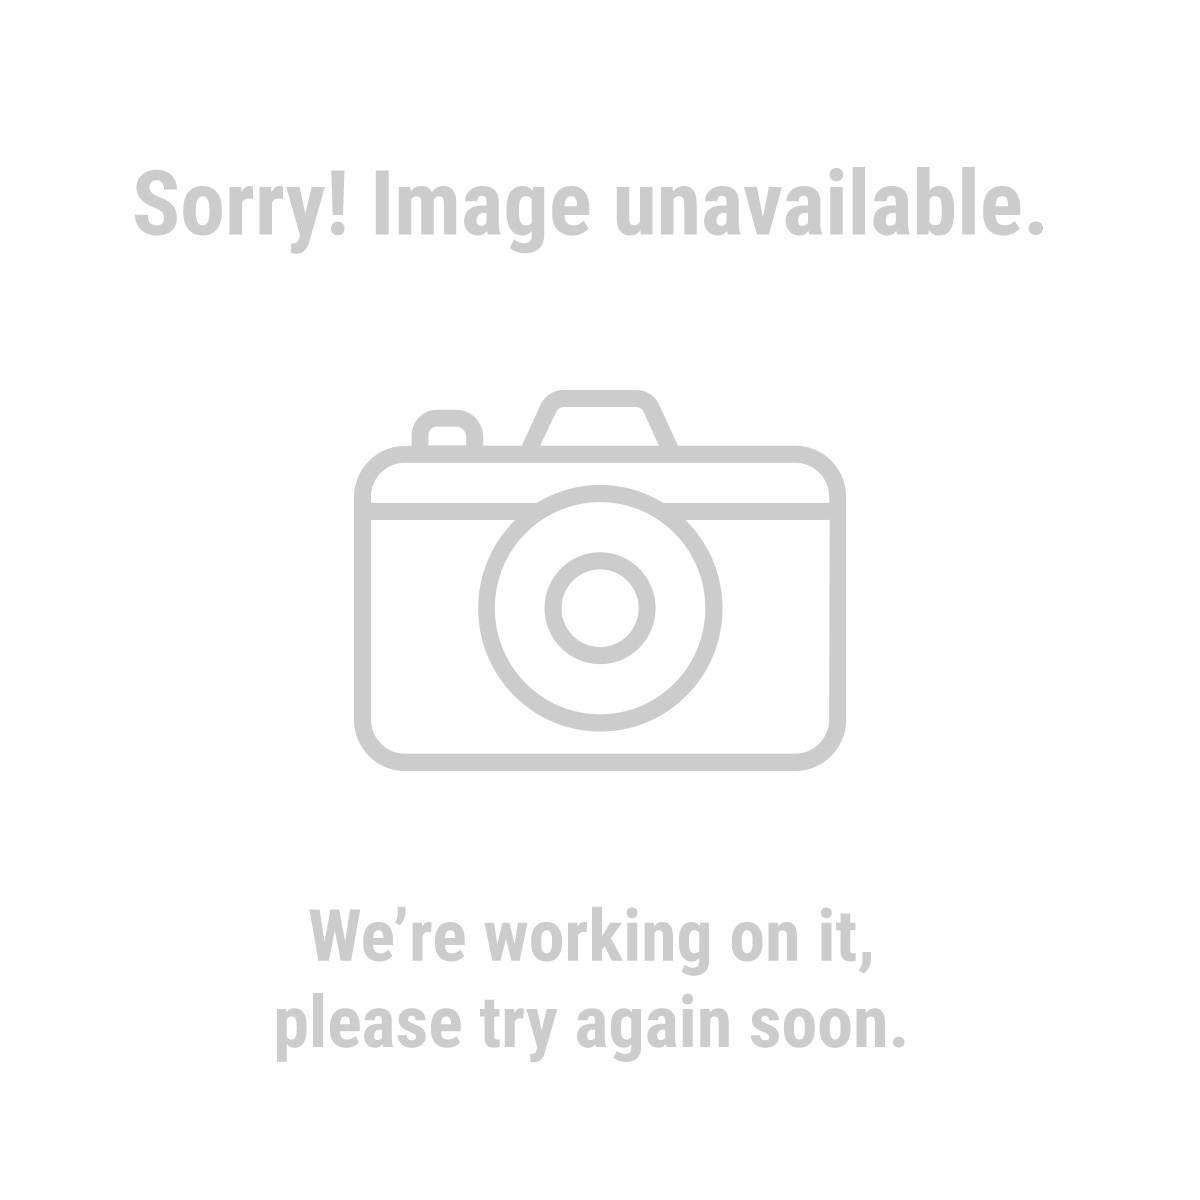 404 INSIDE TRACK CLUB SUBSCRIPTION